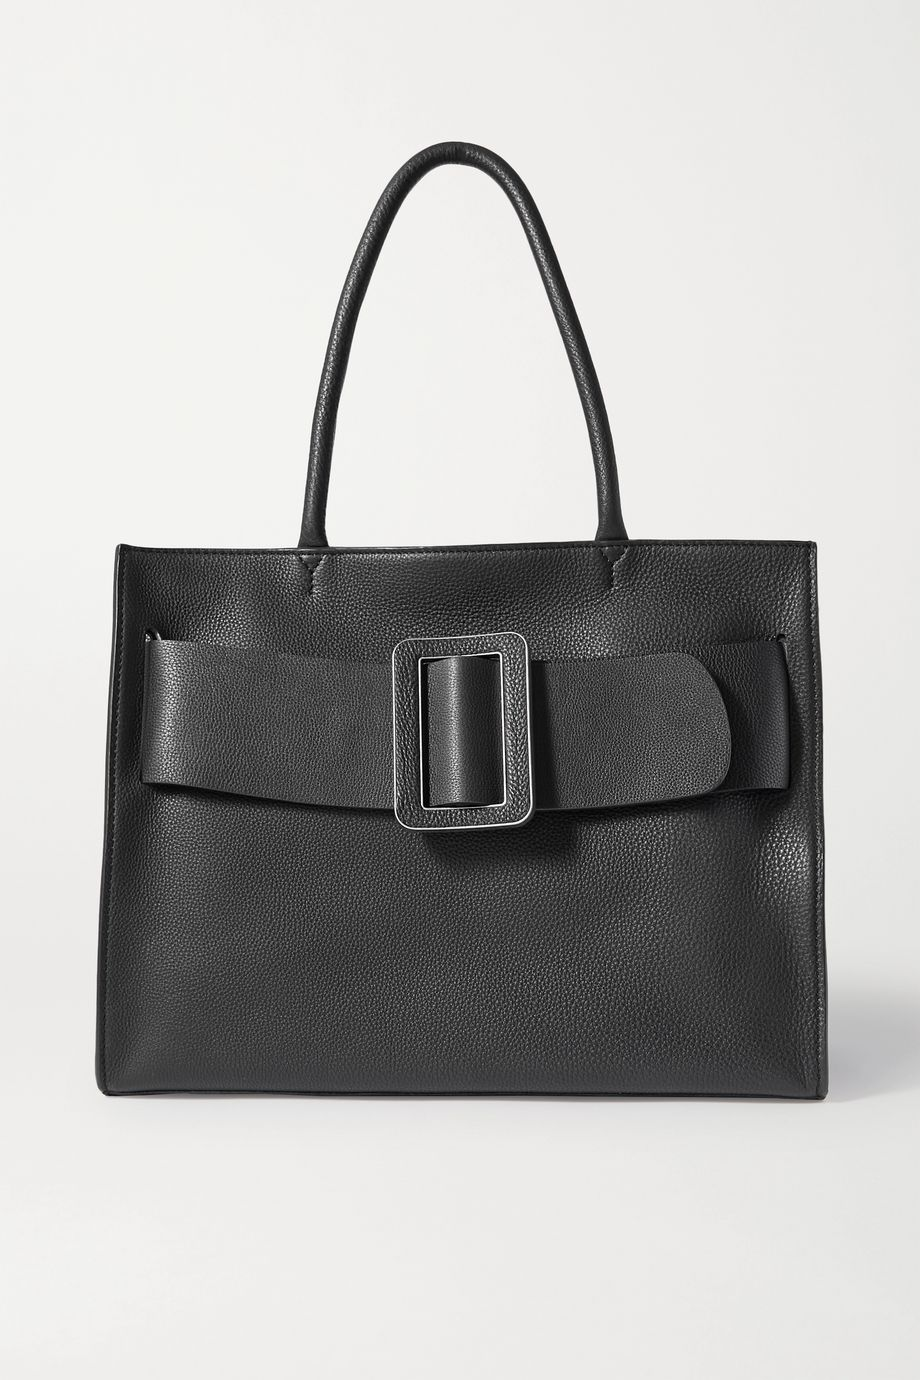 BOYY Bobby Soft large buckled textured-leather tote